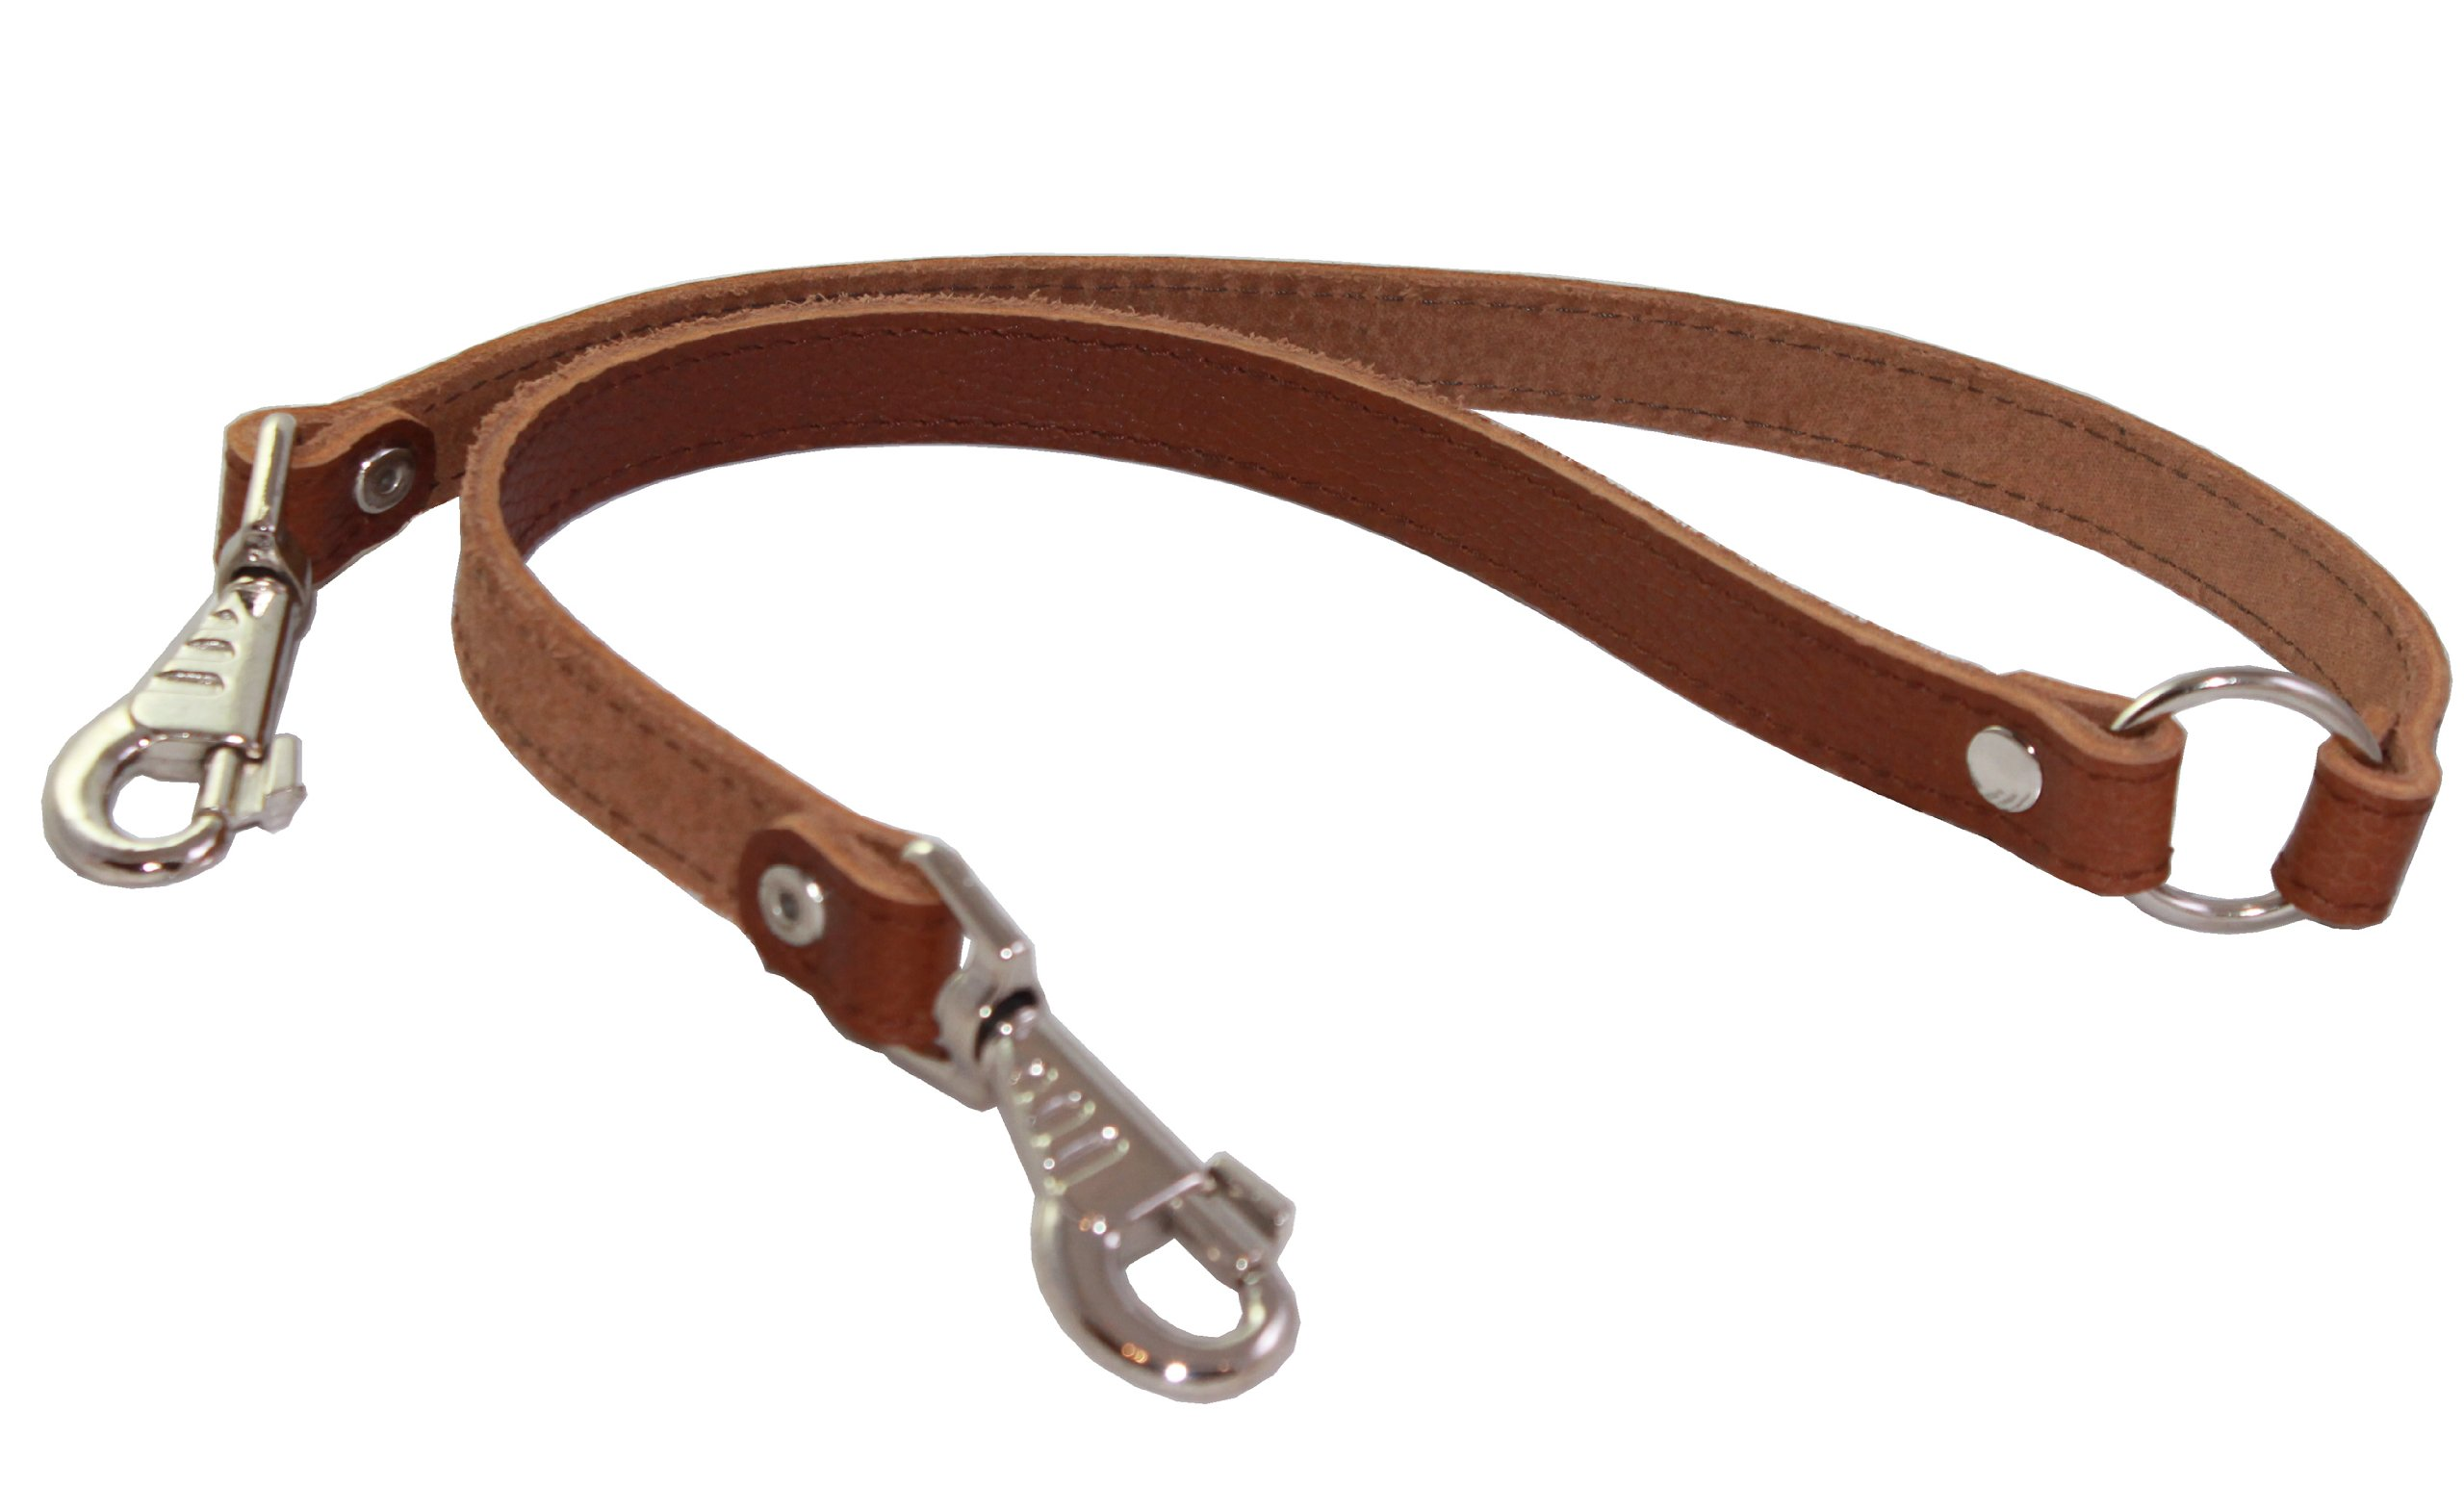 Genuine Leather Double Dog Leash - Two Dog Coupler (Brown, Large (16''L x 7/8''W))